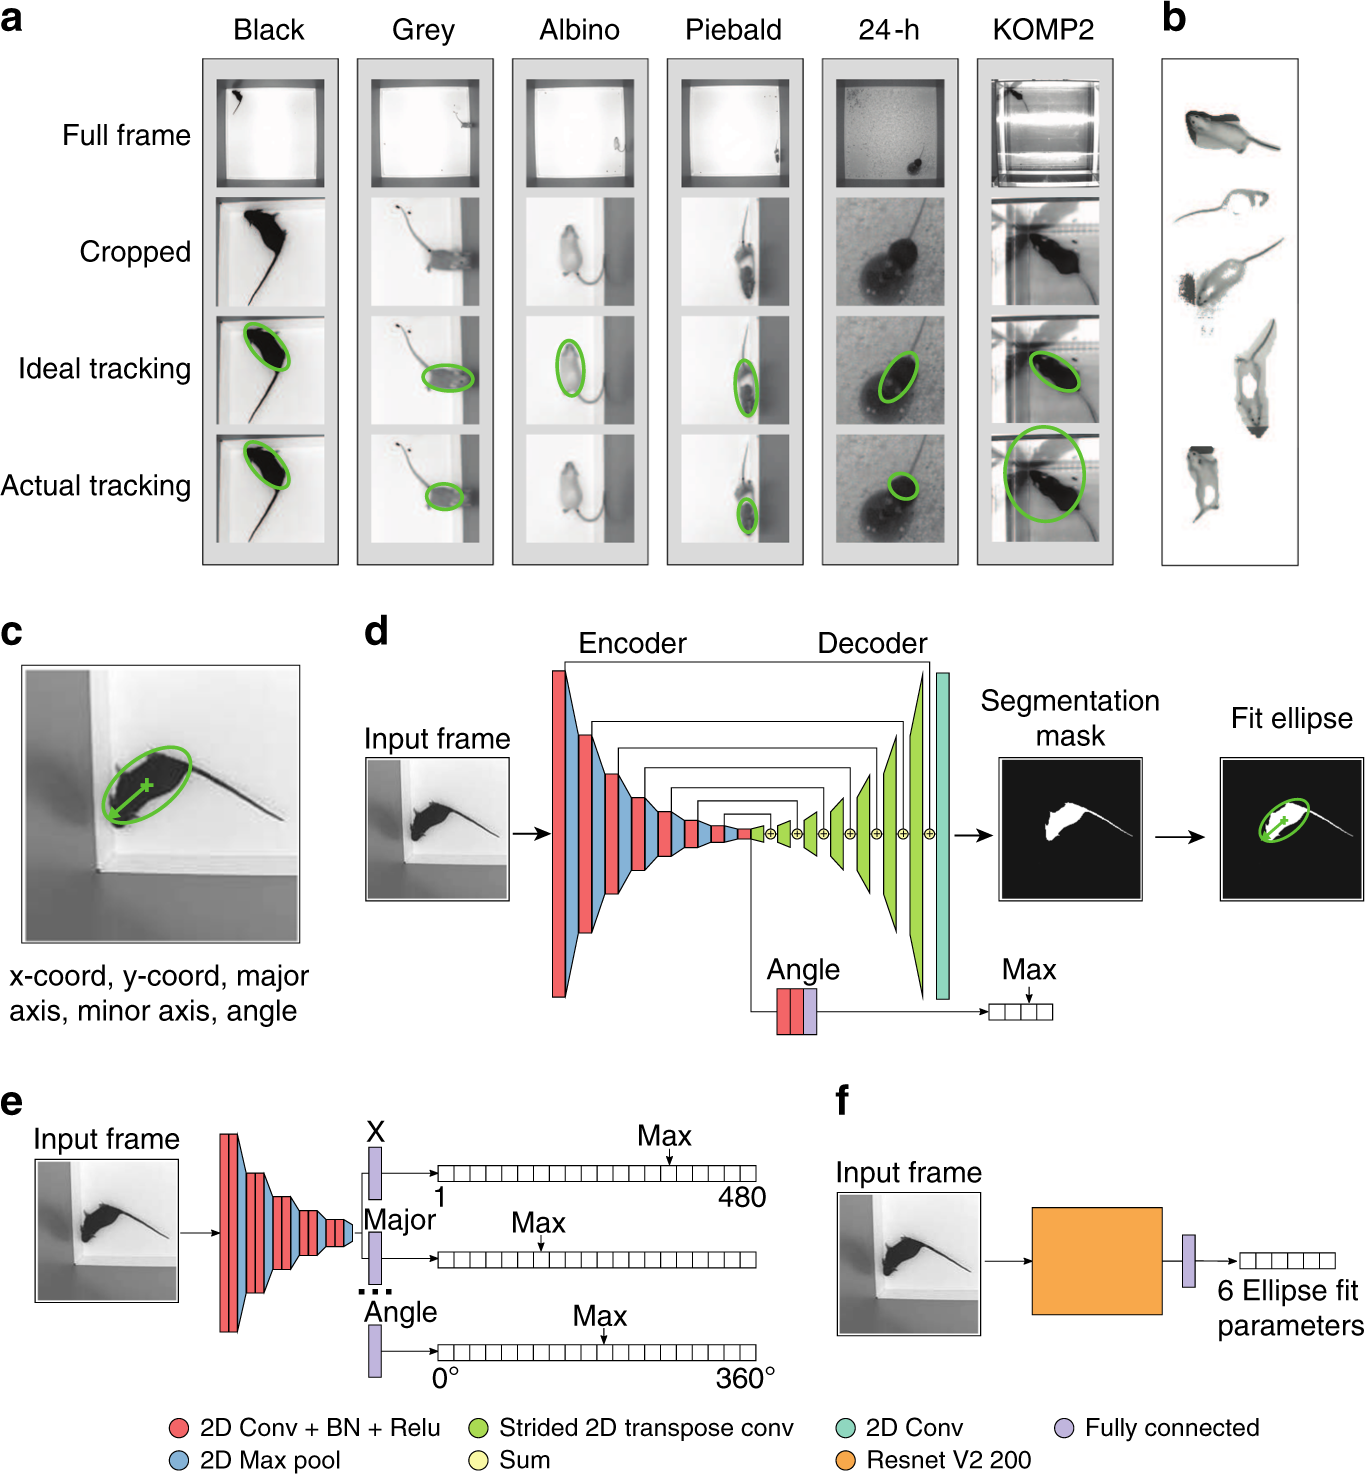 Robust mouse tracking in complex environments using neural